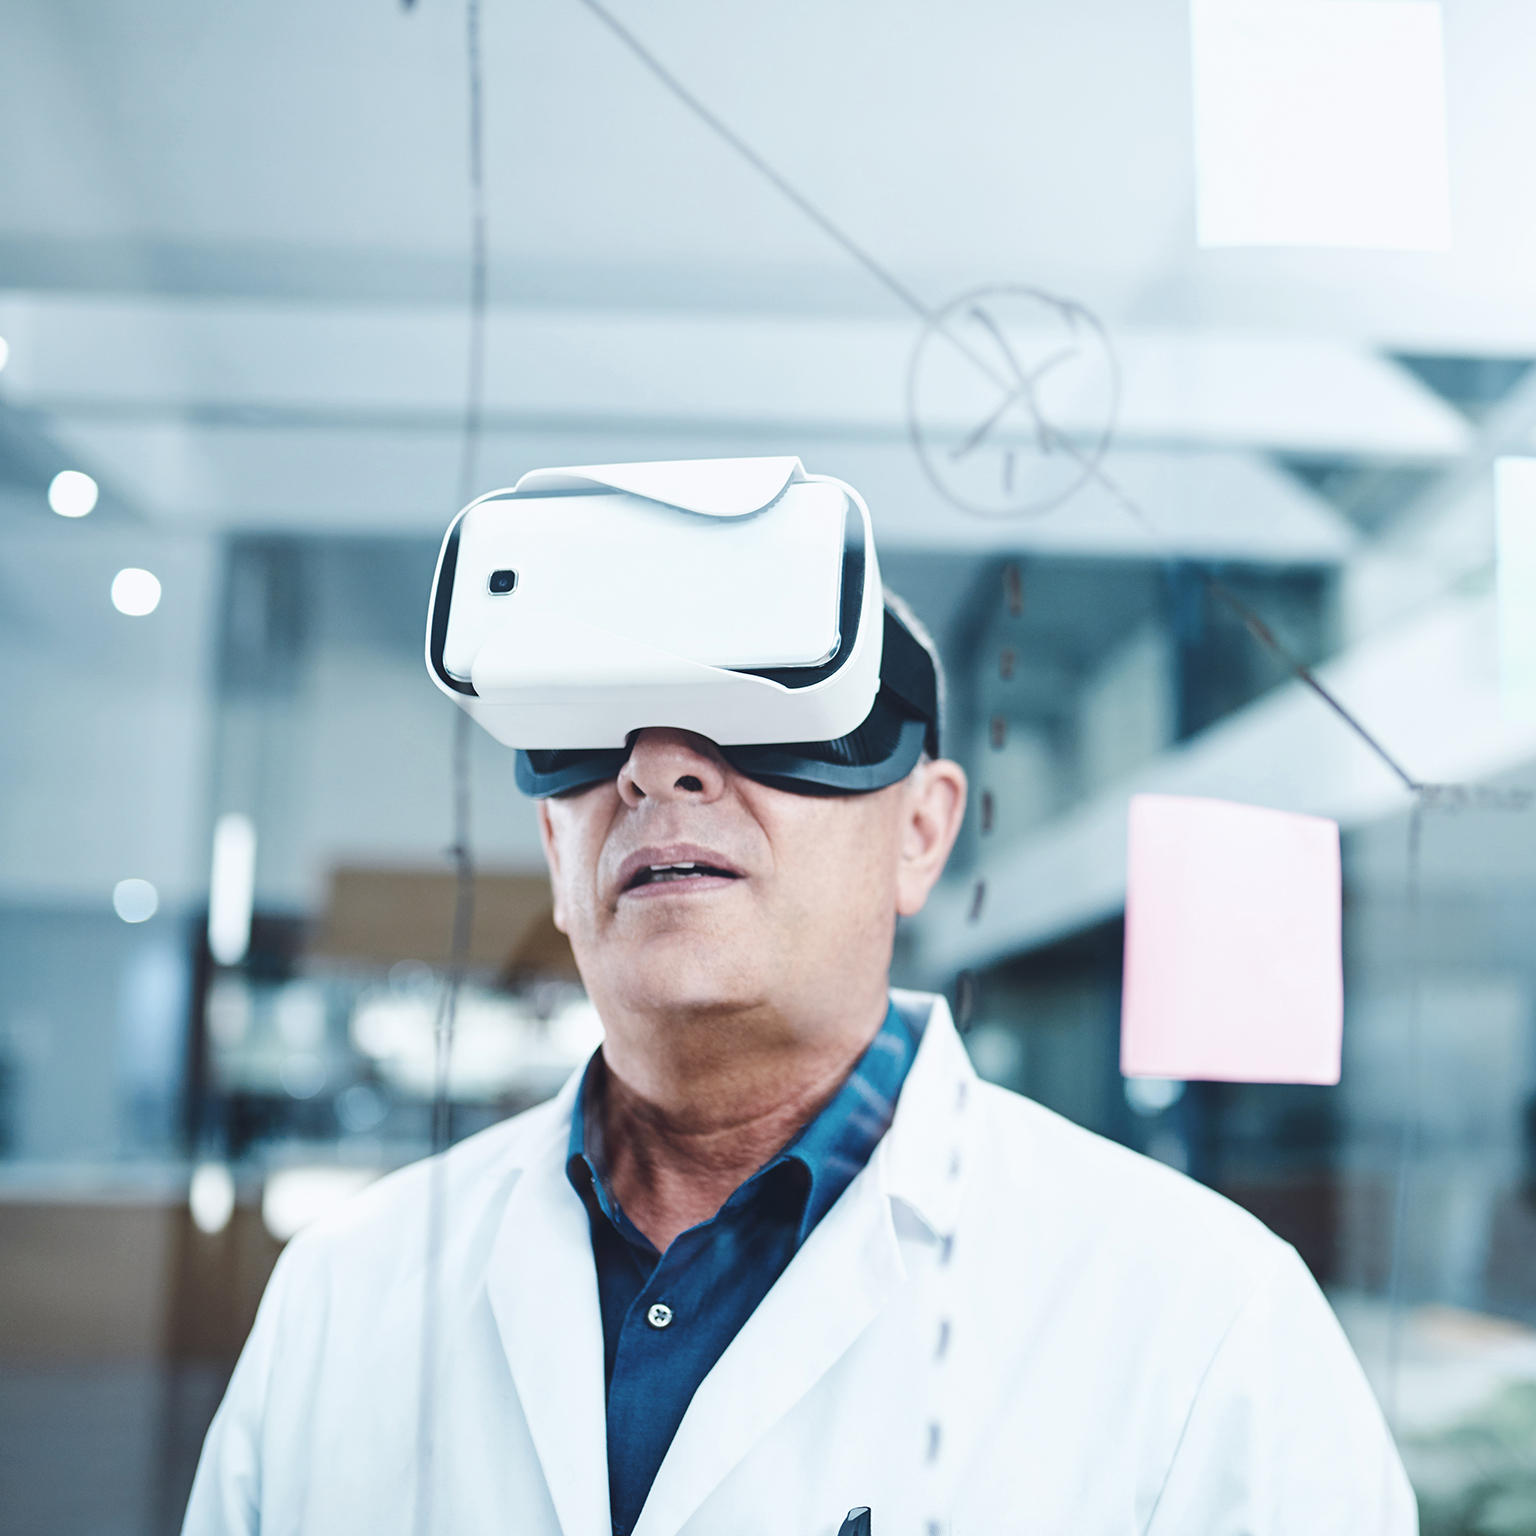 healthtech-in-the-fast-lane:-what-is-fueling-investor-excitement?